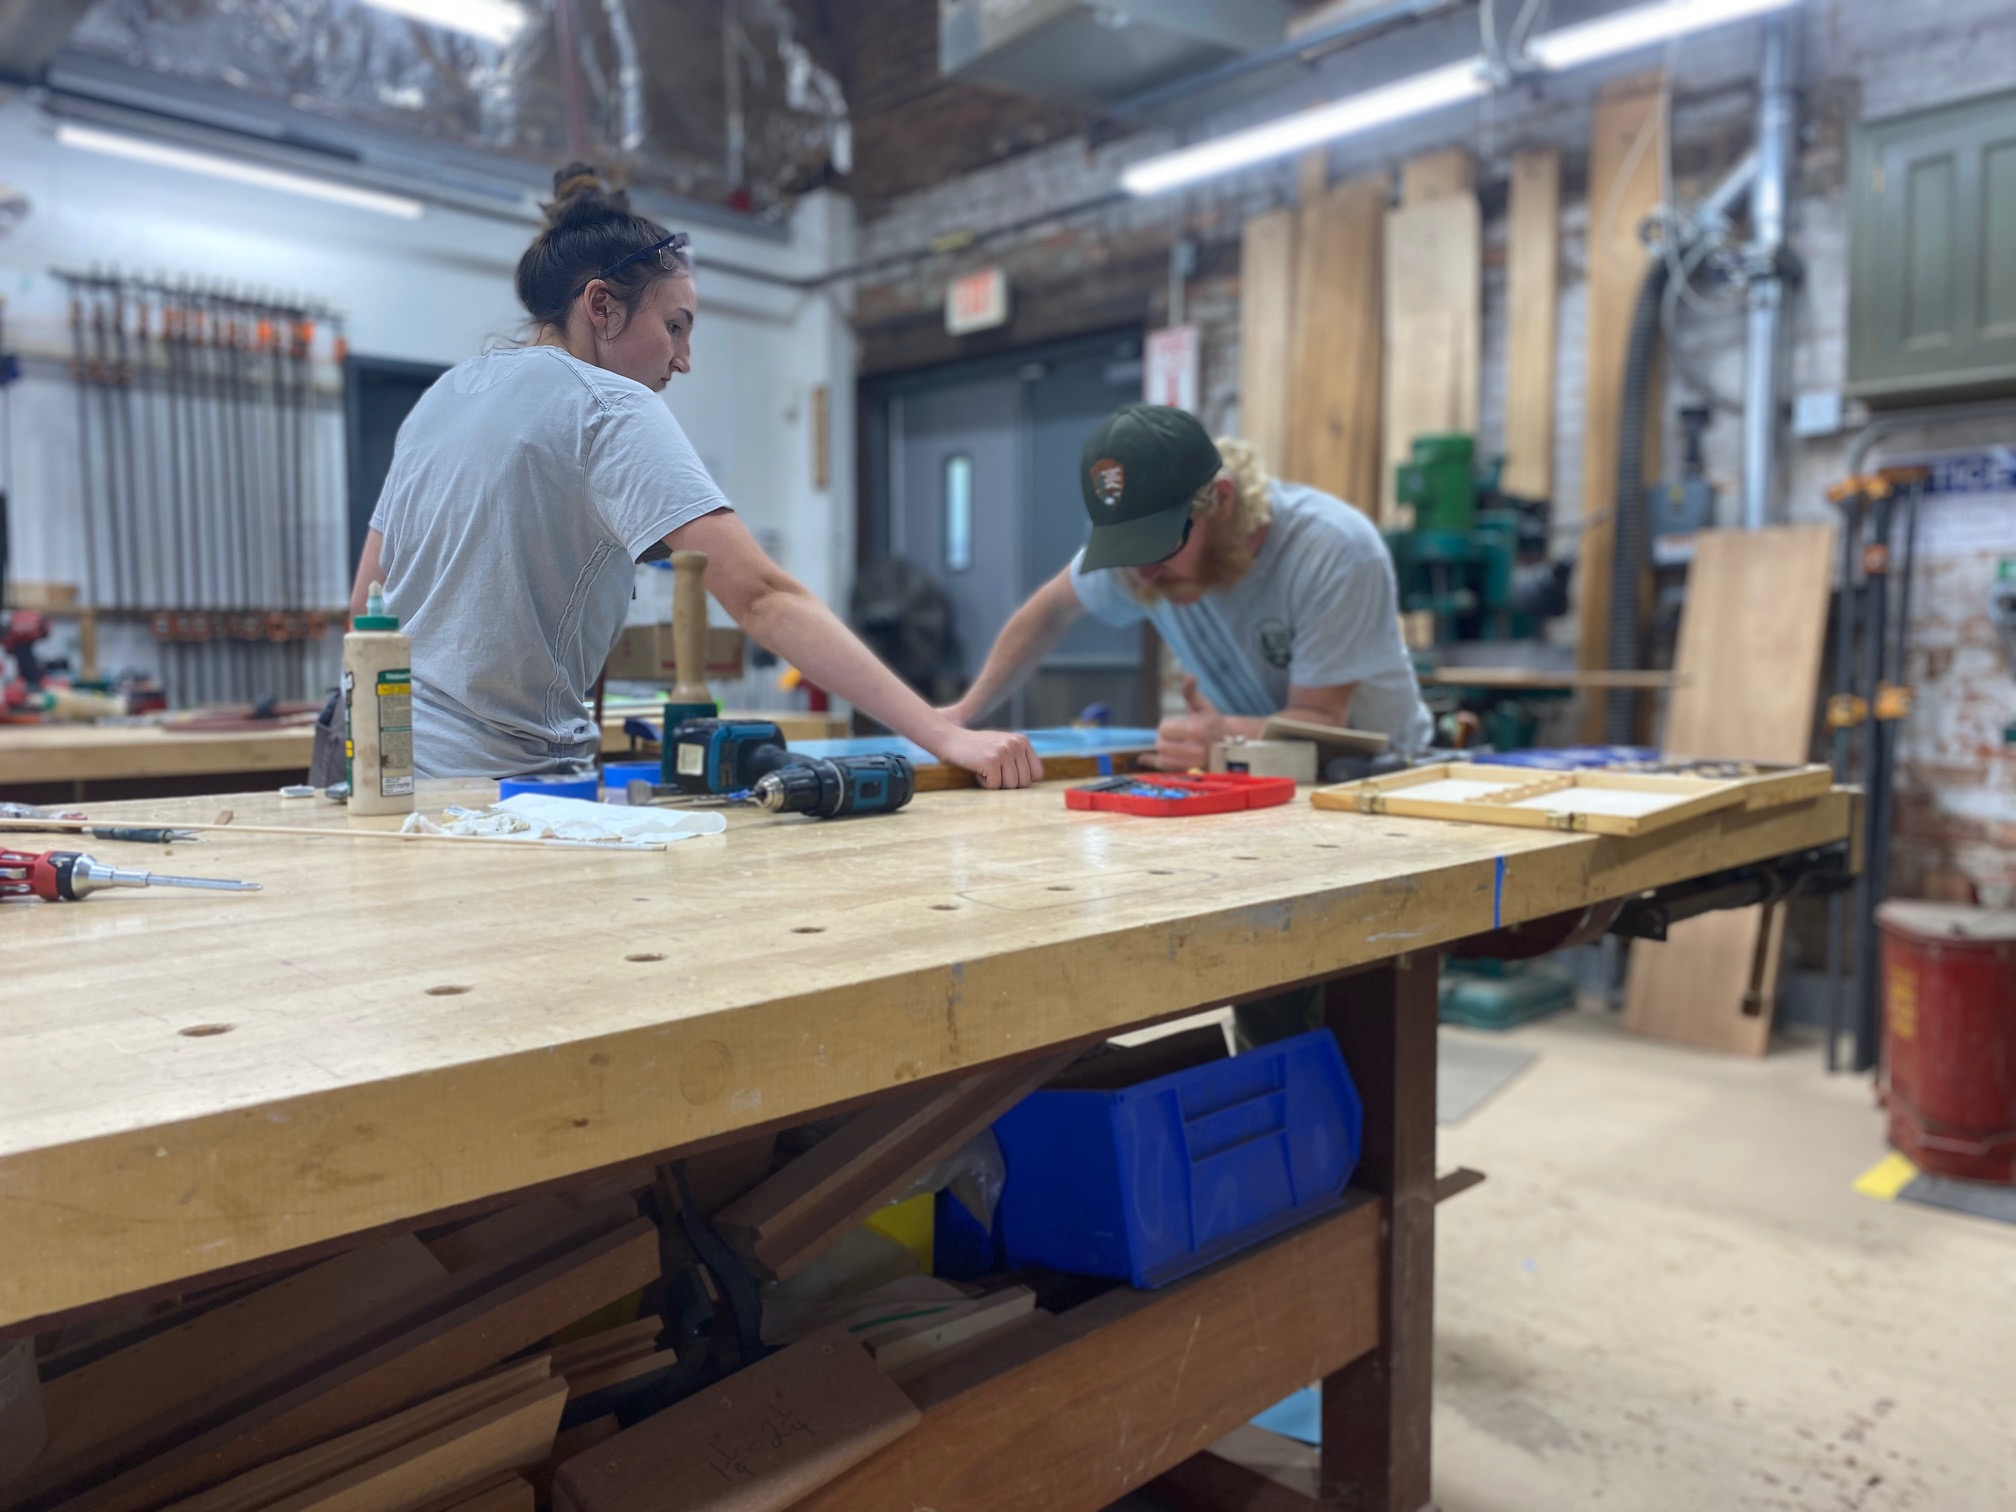 Trainees work at the Historic Preservation Training Center in Frederick, MD.